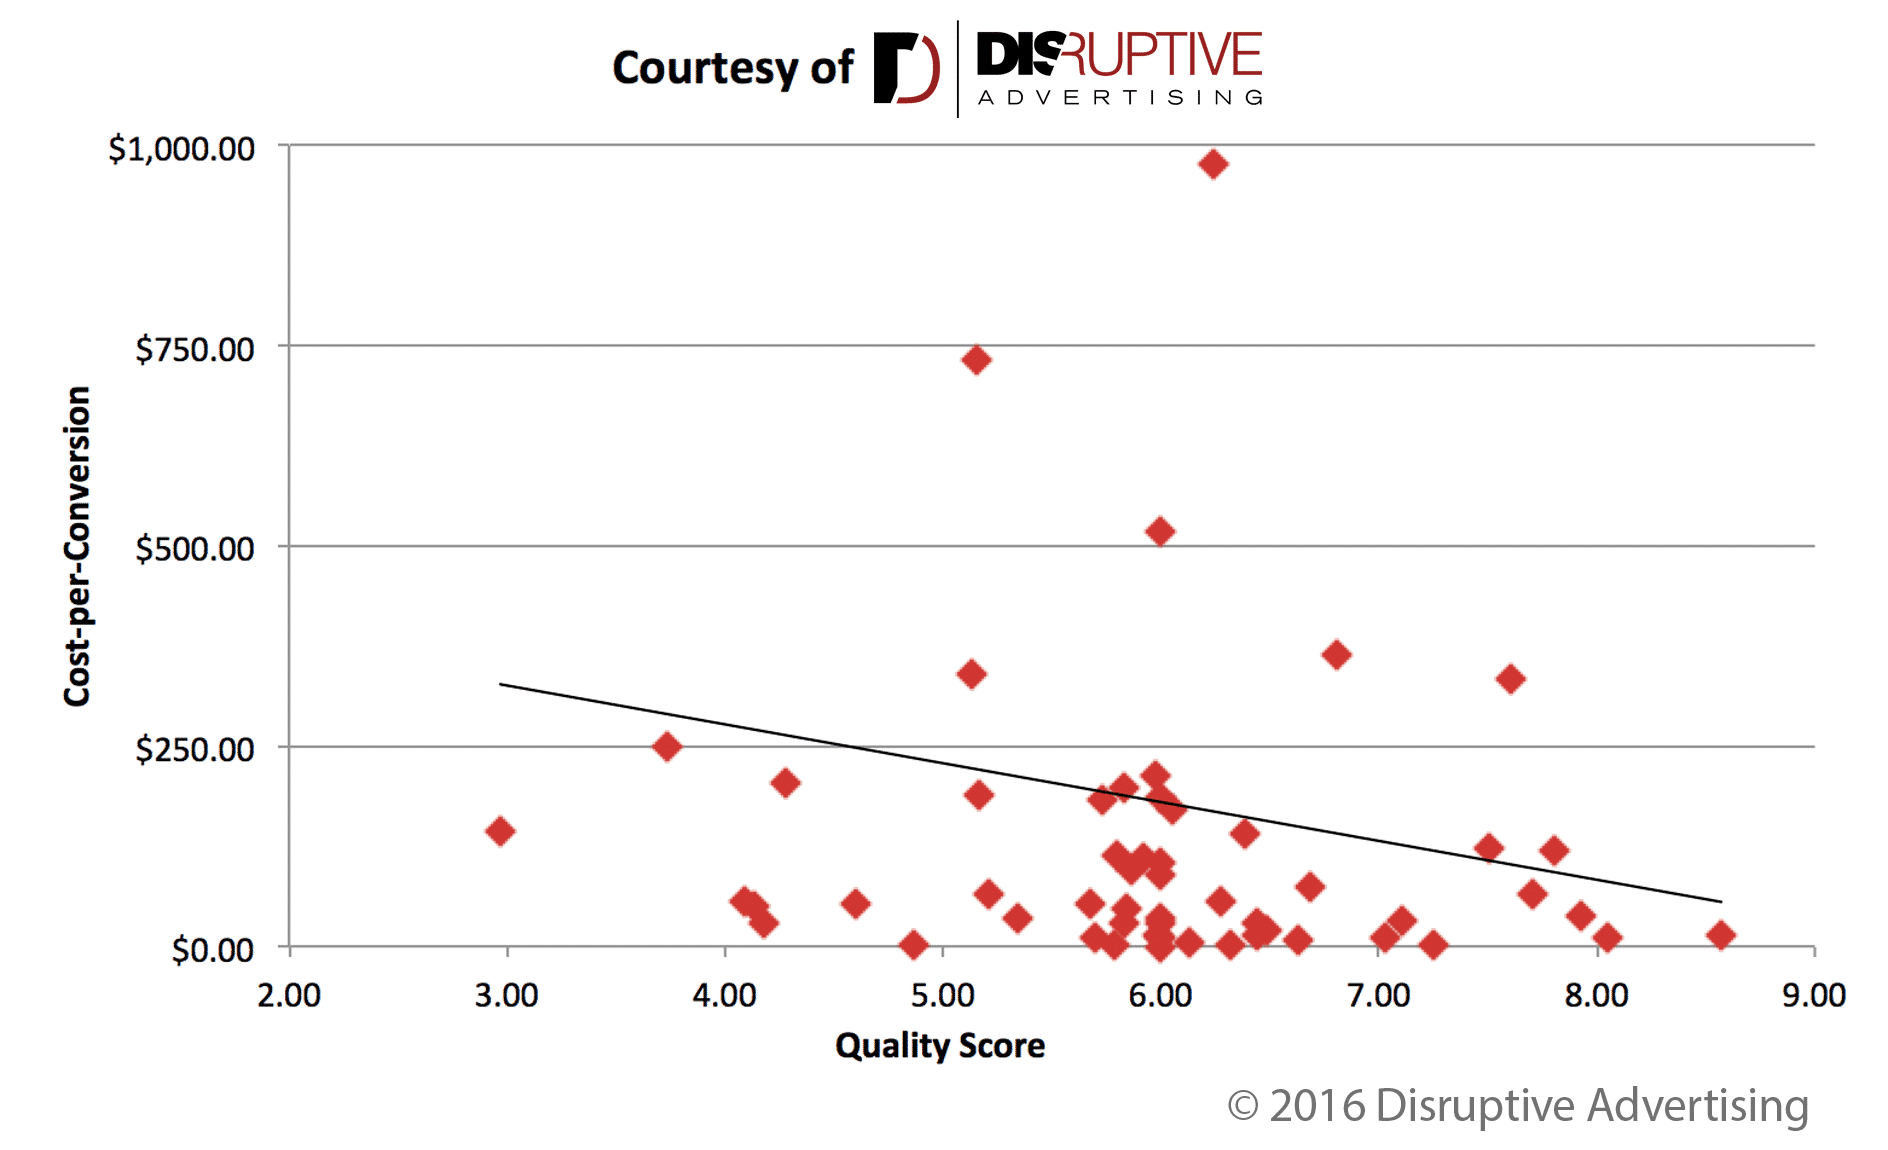 Cost-per-Conversion vs. Quality Score | Disruptive Advertising